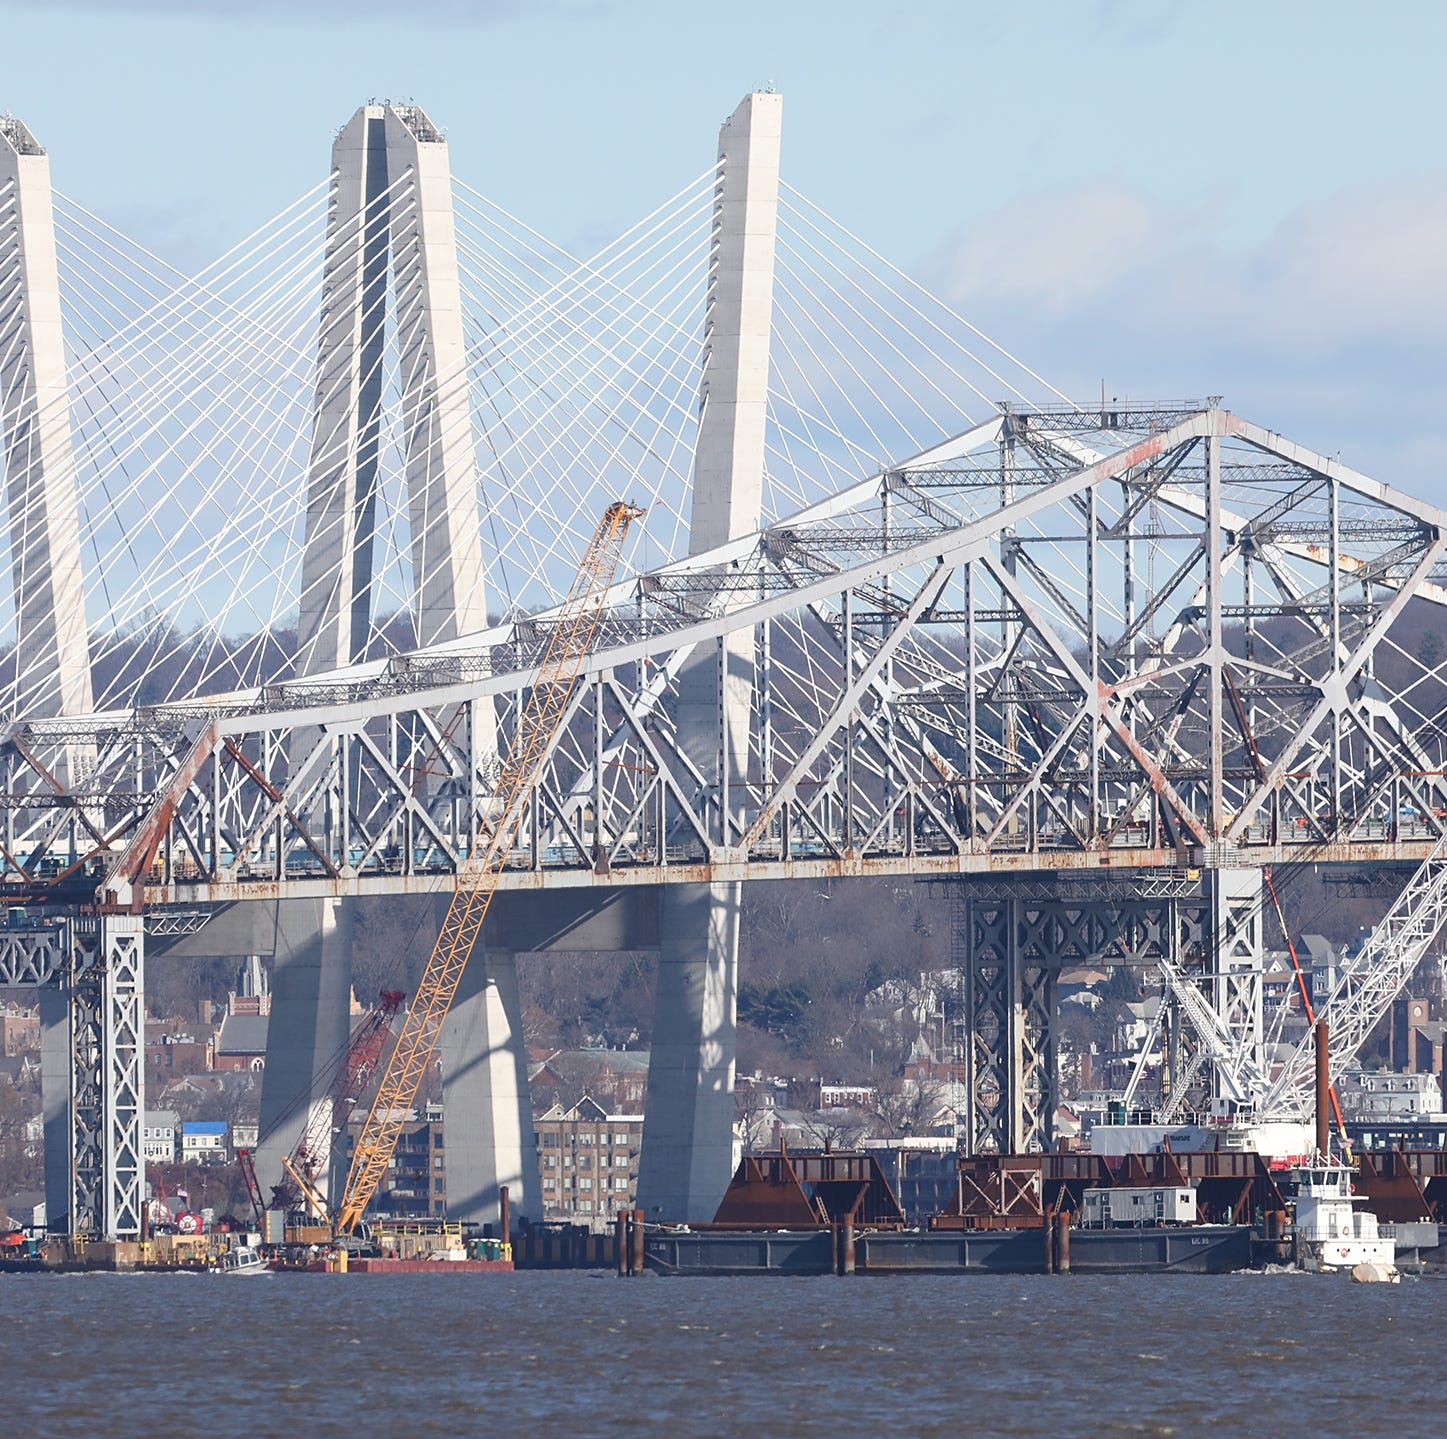 Explosives to knock down the Tappan Zee Bridge? It could happen, but the question is when